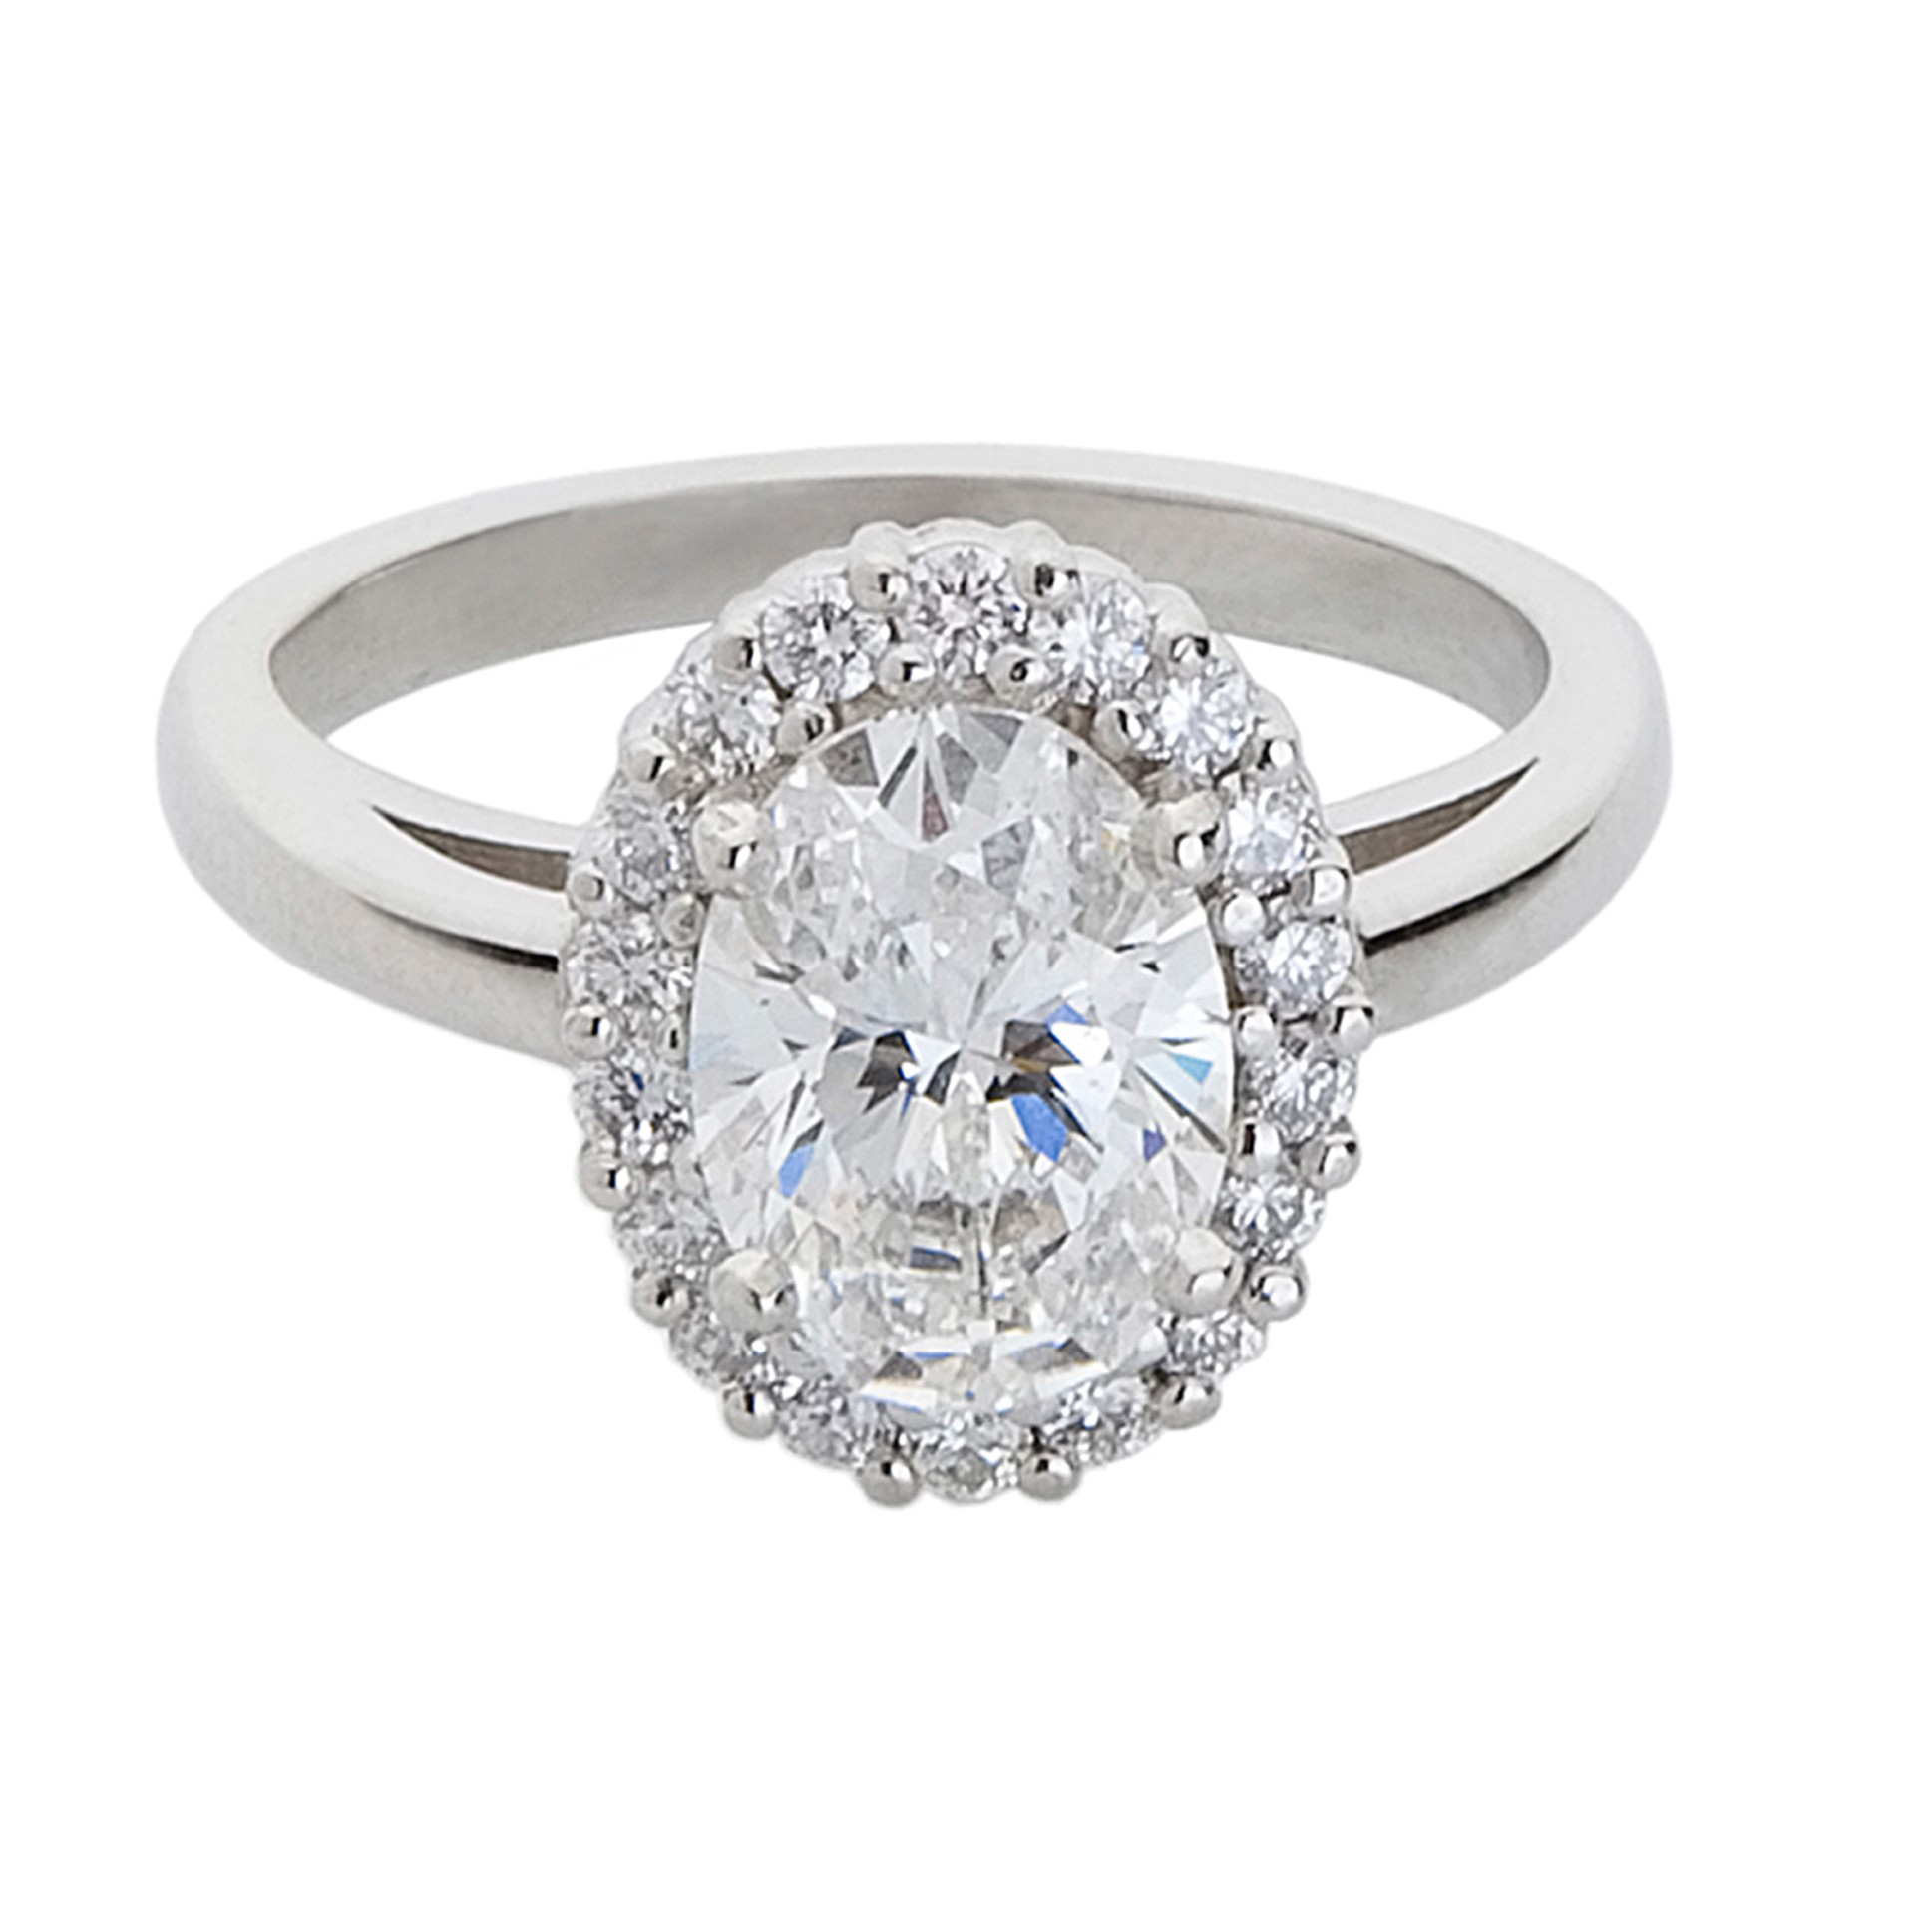 Engagement & Wedding Rings | M. Flynn | Boston Engagement Intended For Recent Prong Set Oval Shaped Diamond Wedding Bands (Gallery 20 of 25)